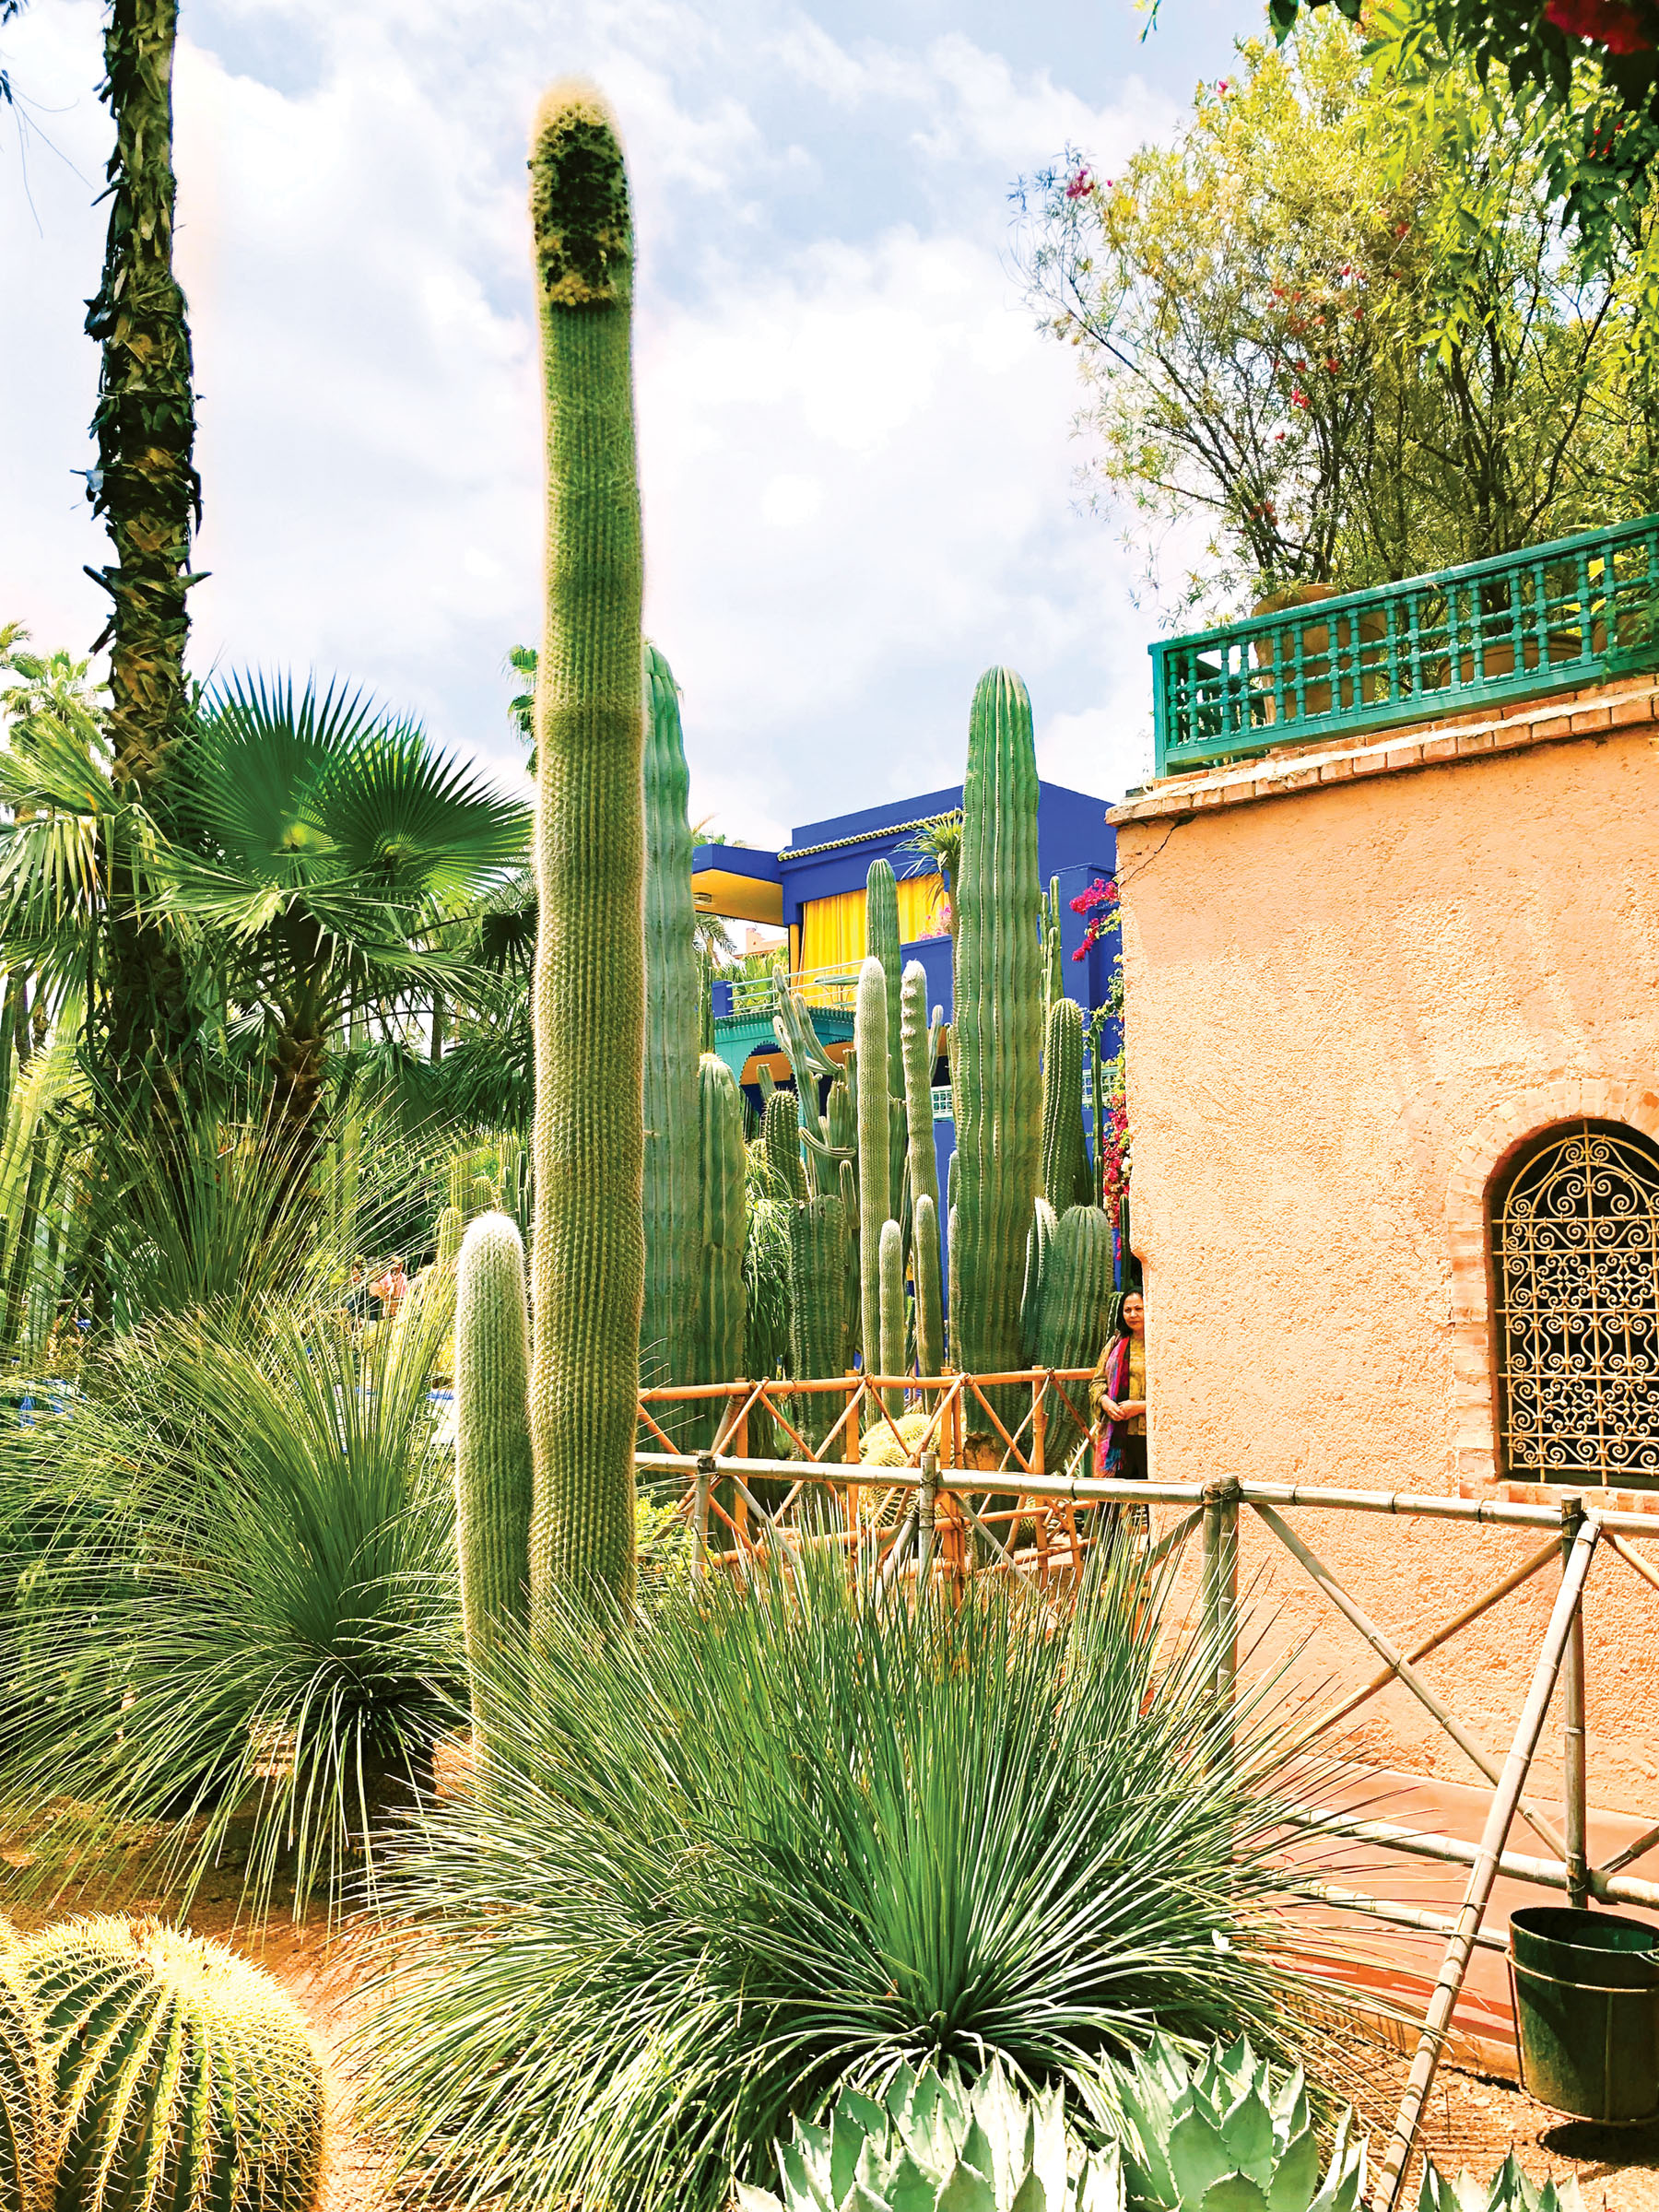 Something colourful around every corner at the Musee Yves Saint Laurent Marrakech